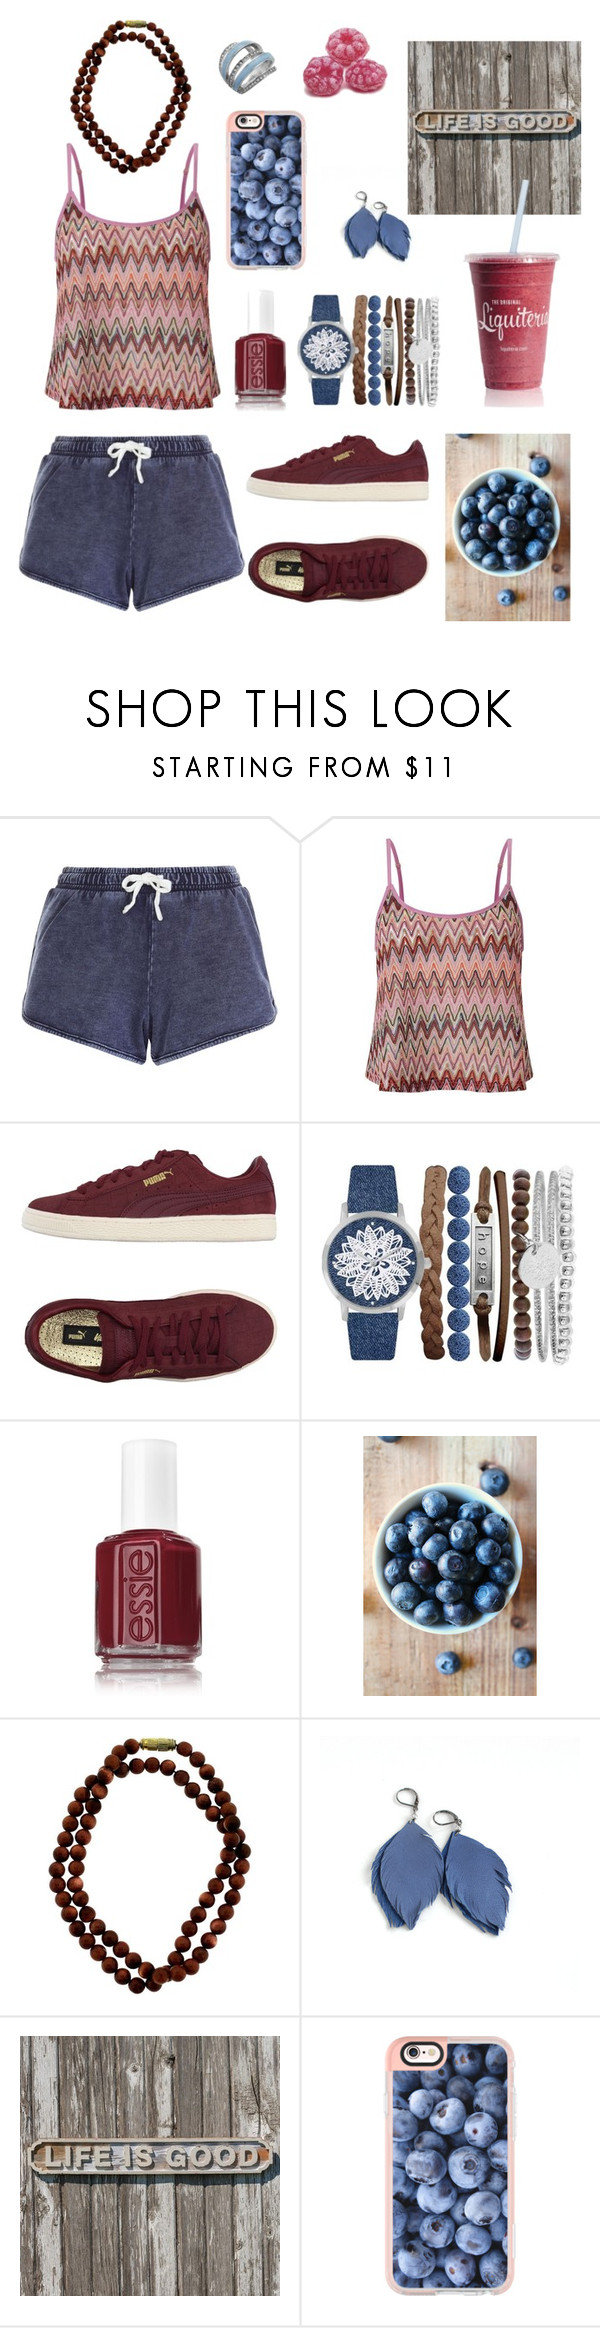 """""""Way of life- time"""" by kathrin-black ❤ liked on Polyvore featuring New Look, Lipsy, Puma, Jessica Carlyle, Essie, Casetify and GUESS"""